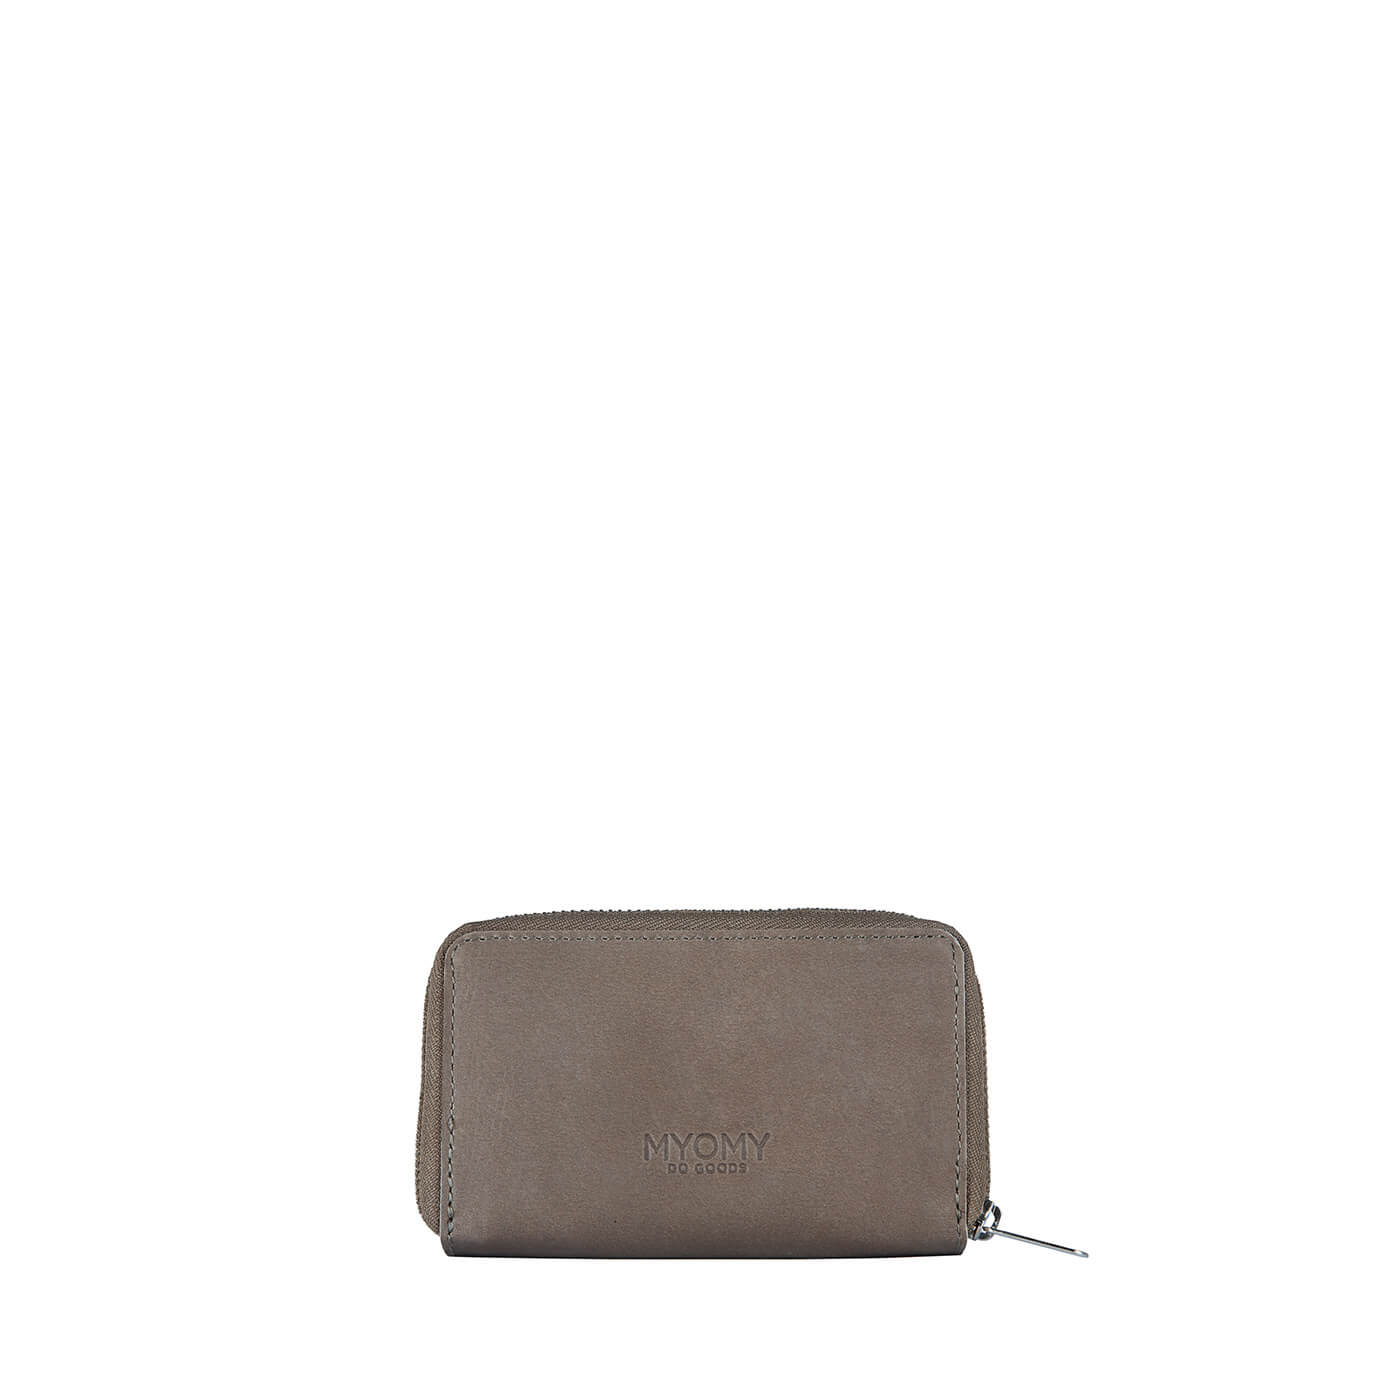 MY CARRY BAG Wallet Medium - hunter taupe